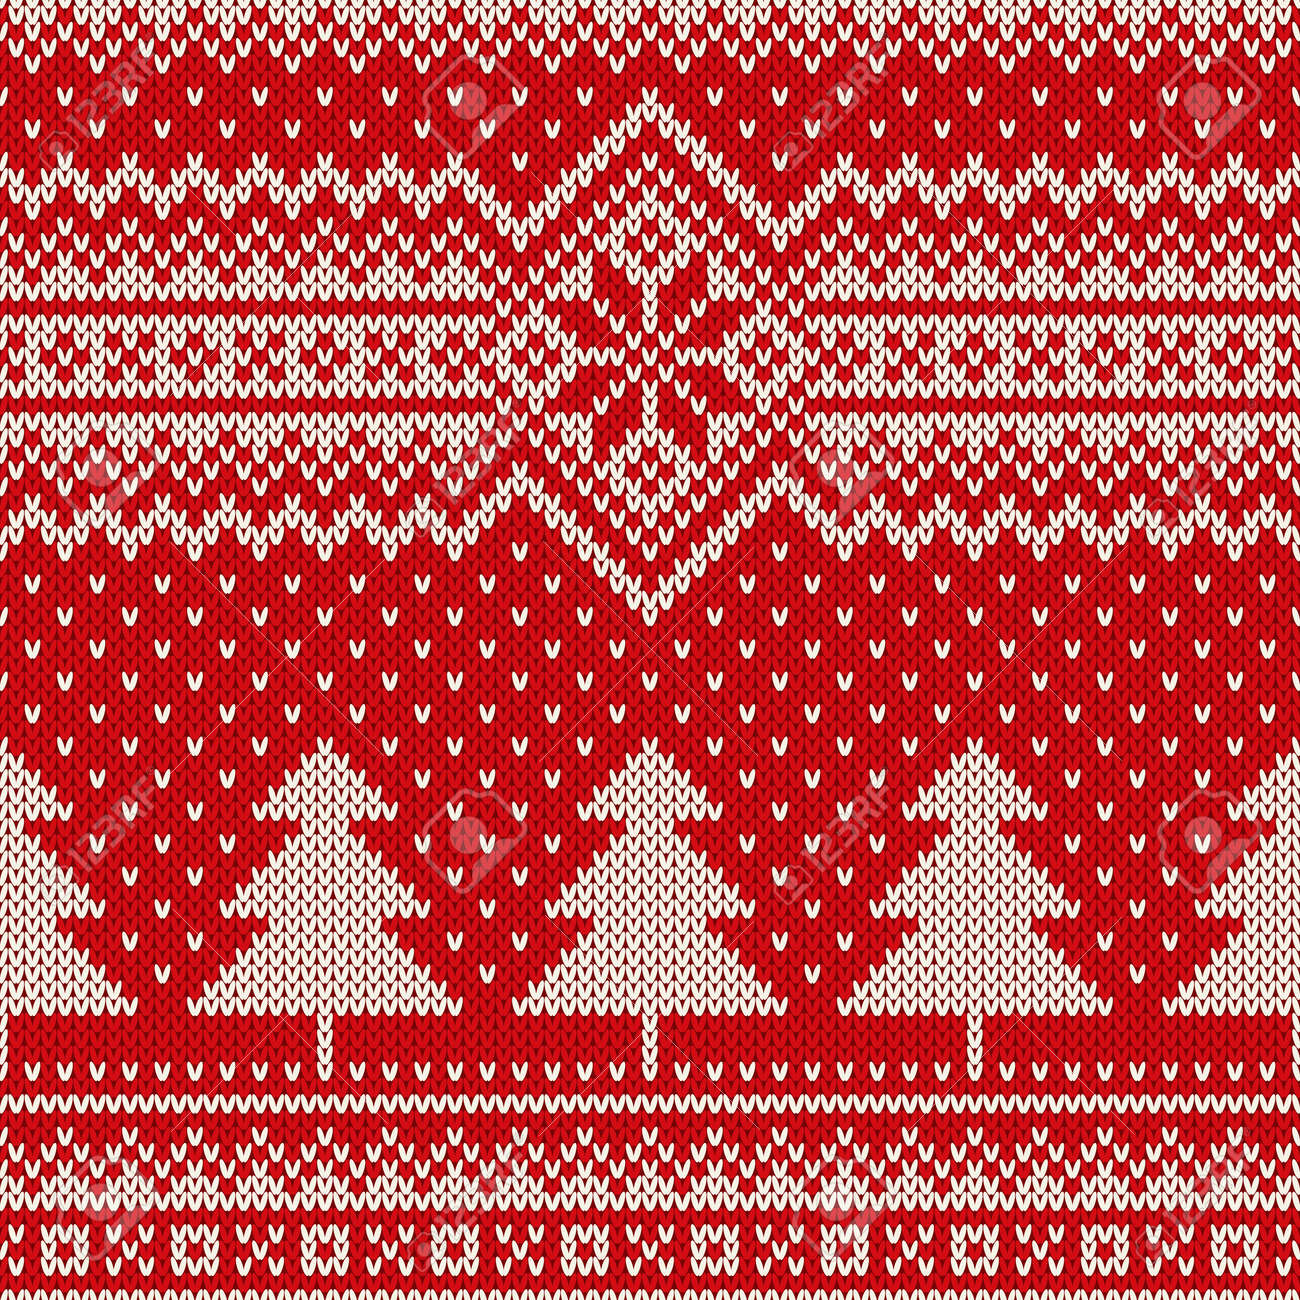 Christmas Sweater Pattern.Winter Holiday Seamless Knitting Pattern With A Christmas Trees